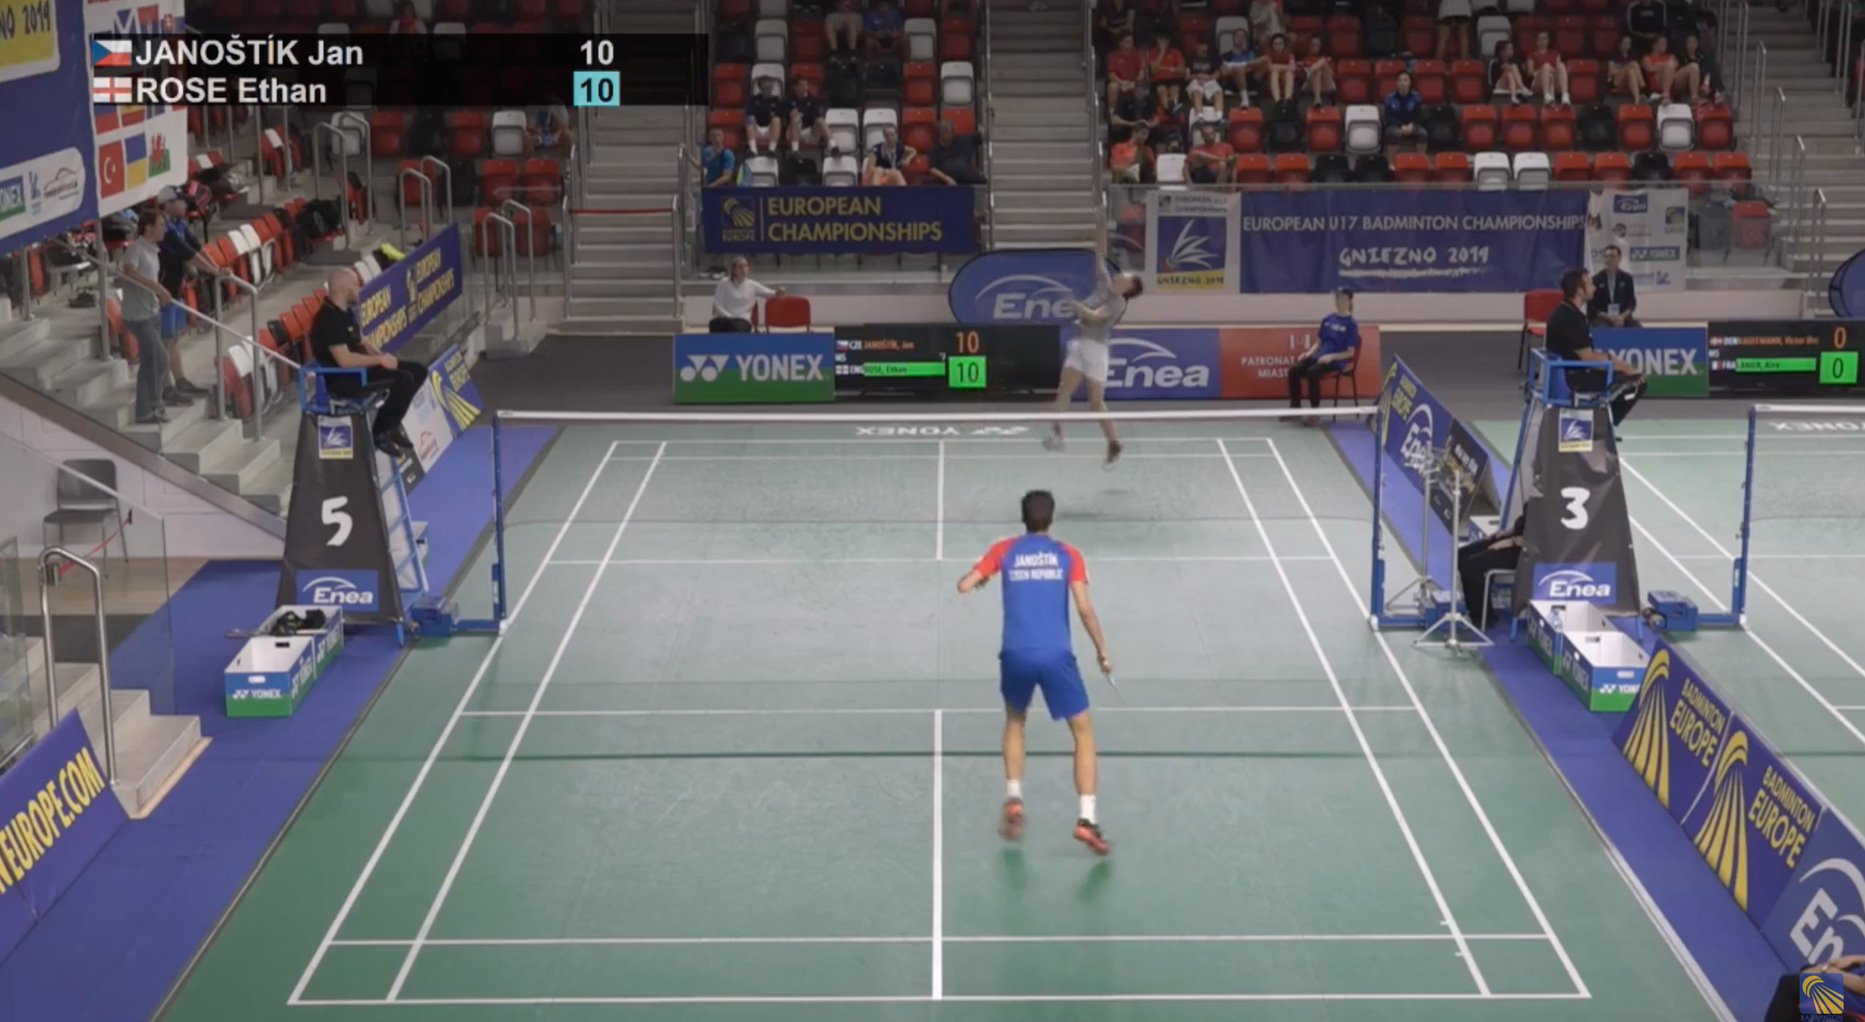 Quarter-Final-Match---U17-European-Badminton-Championships-(Sept-2019)---Beating-No.1-Seed